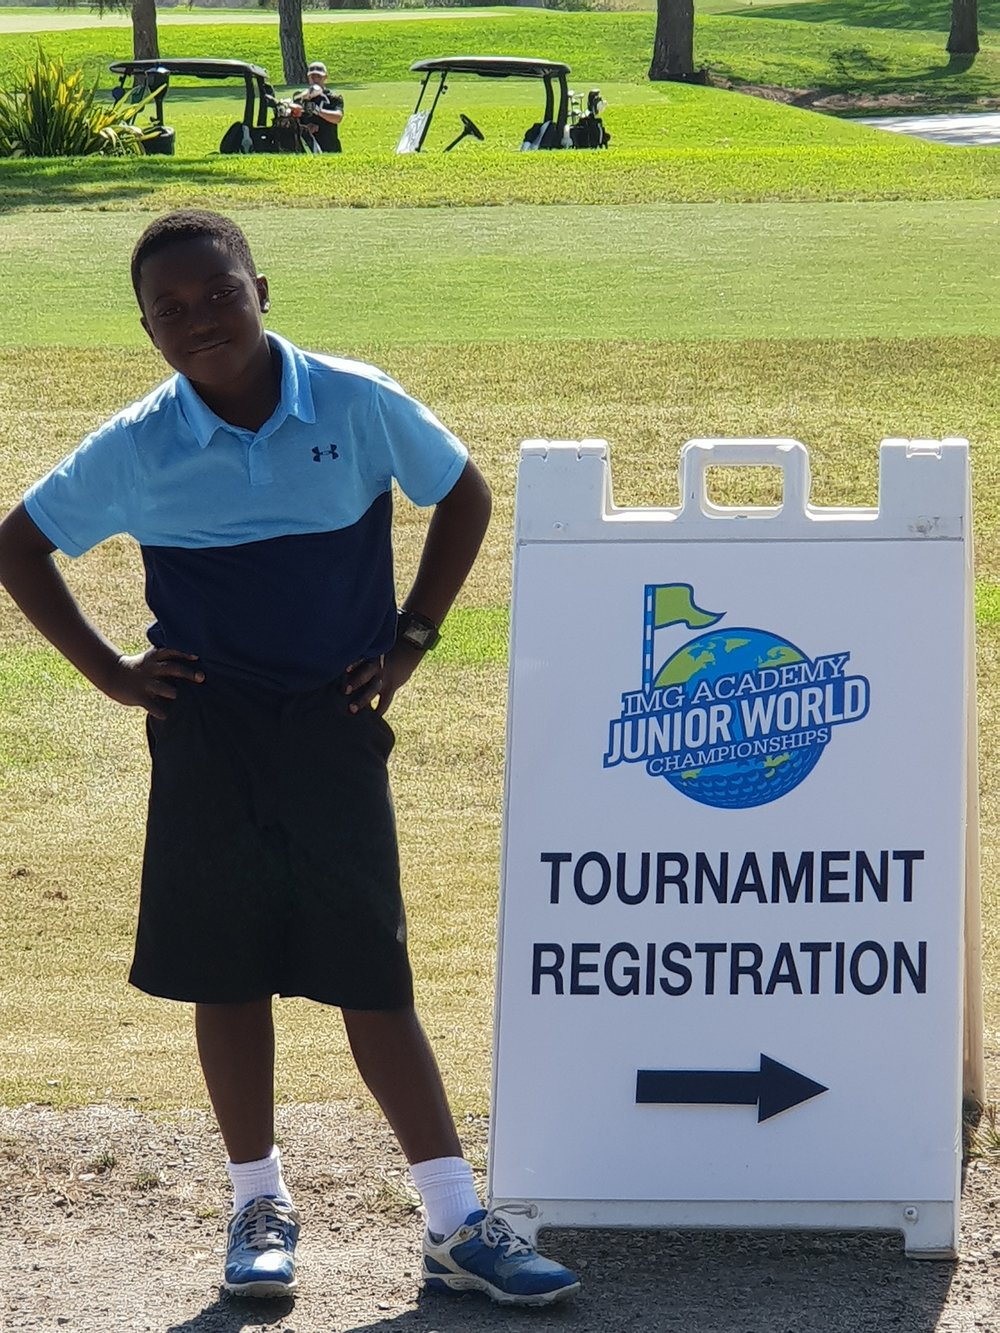 2018 IMG Academy JUNIOR WORLD Championship